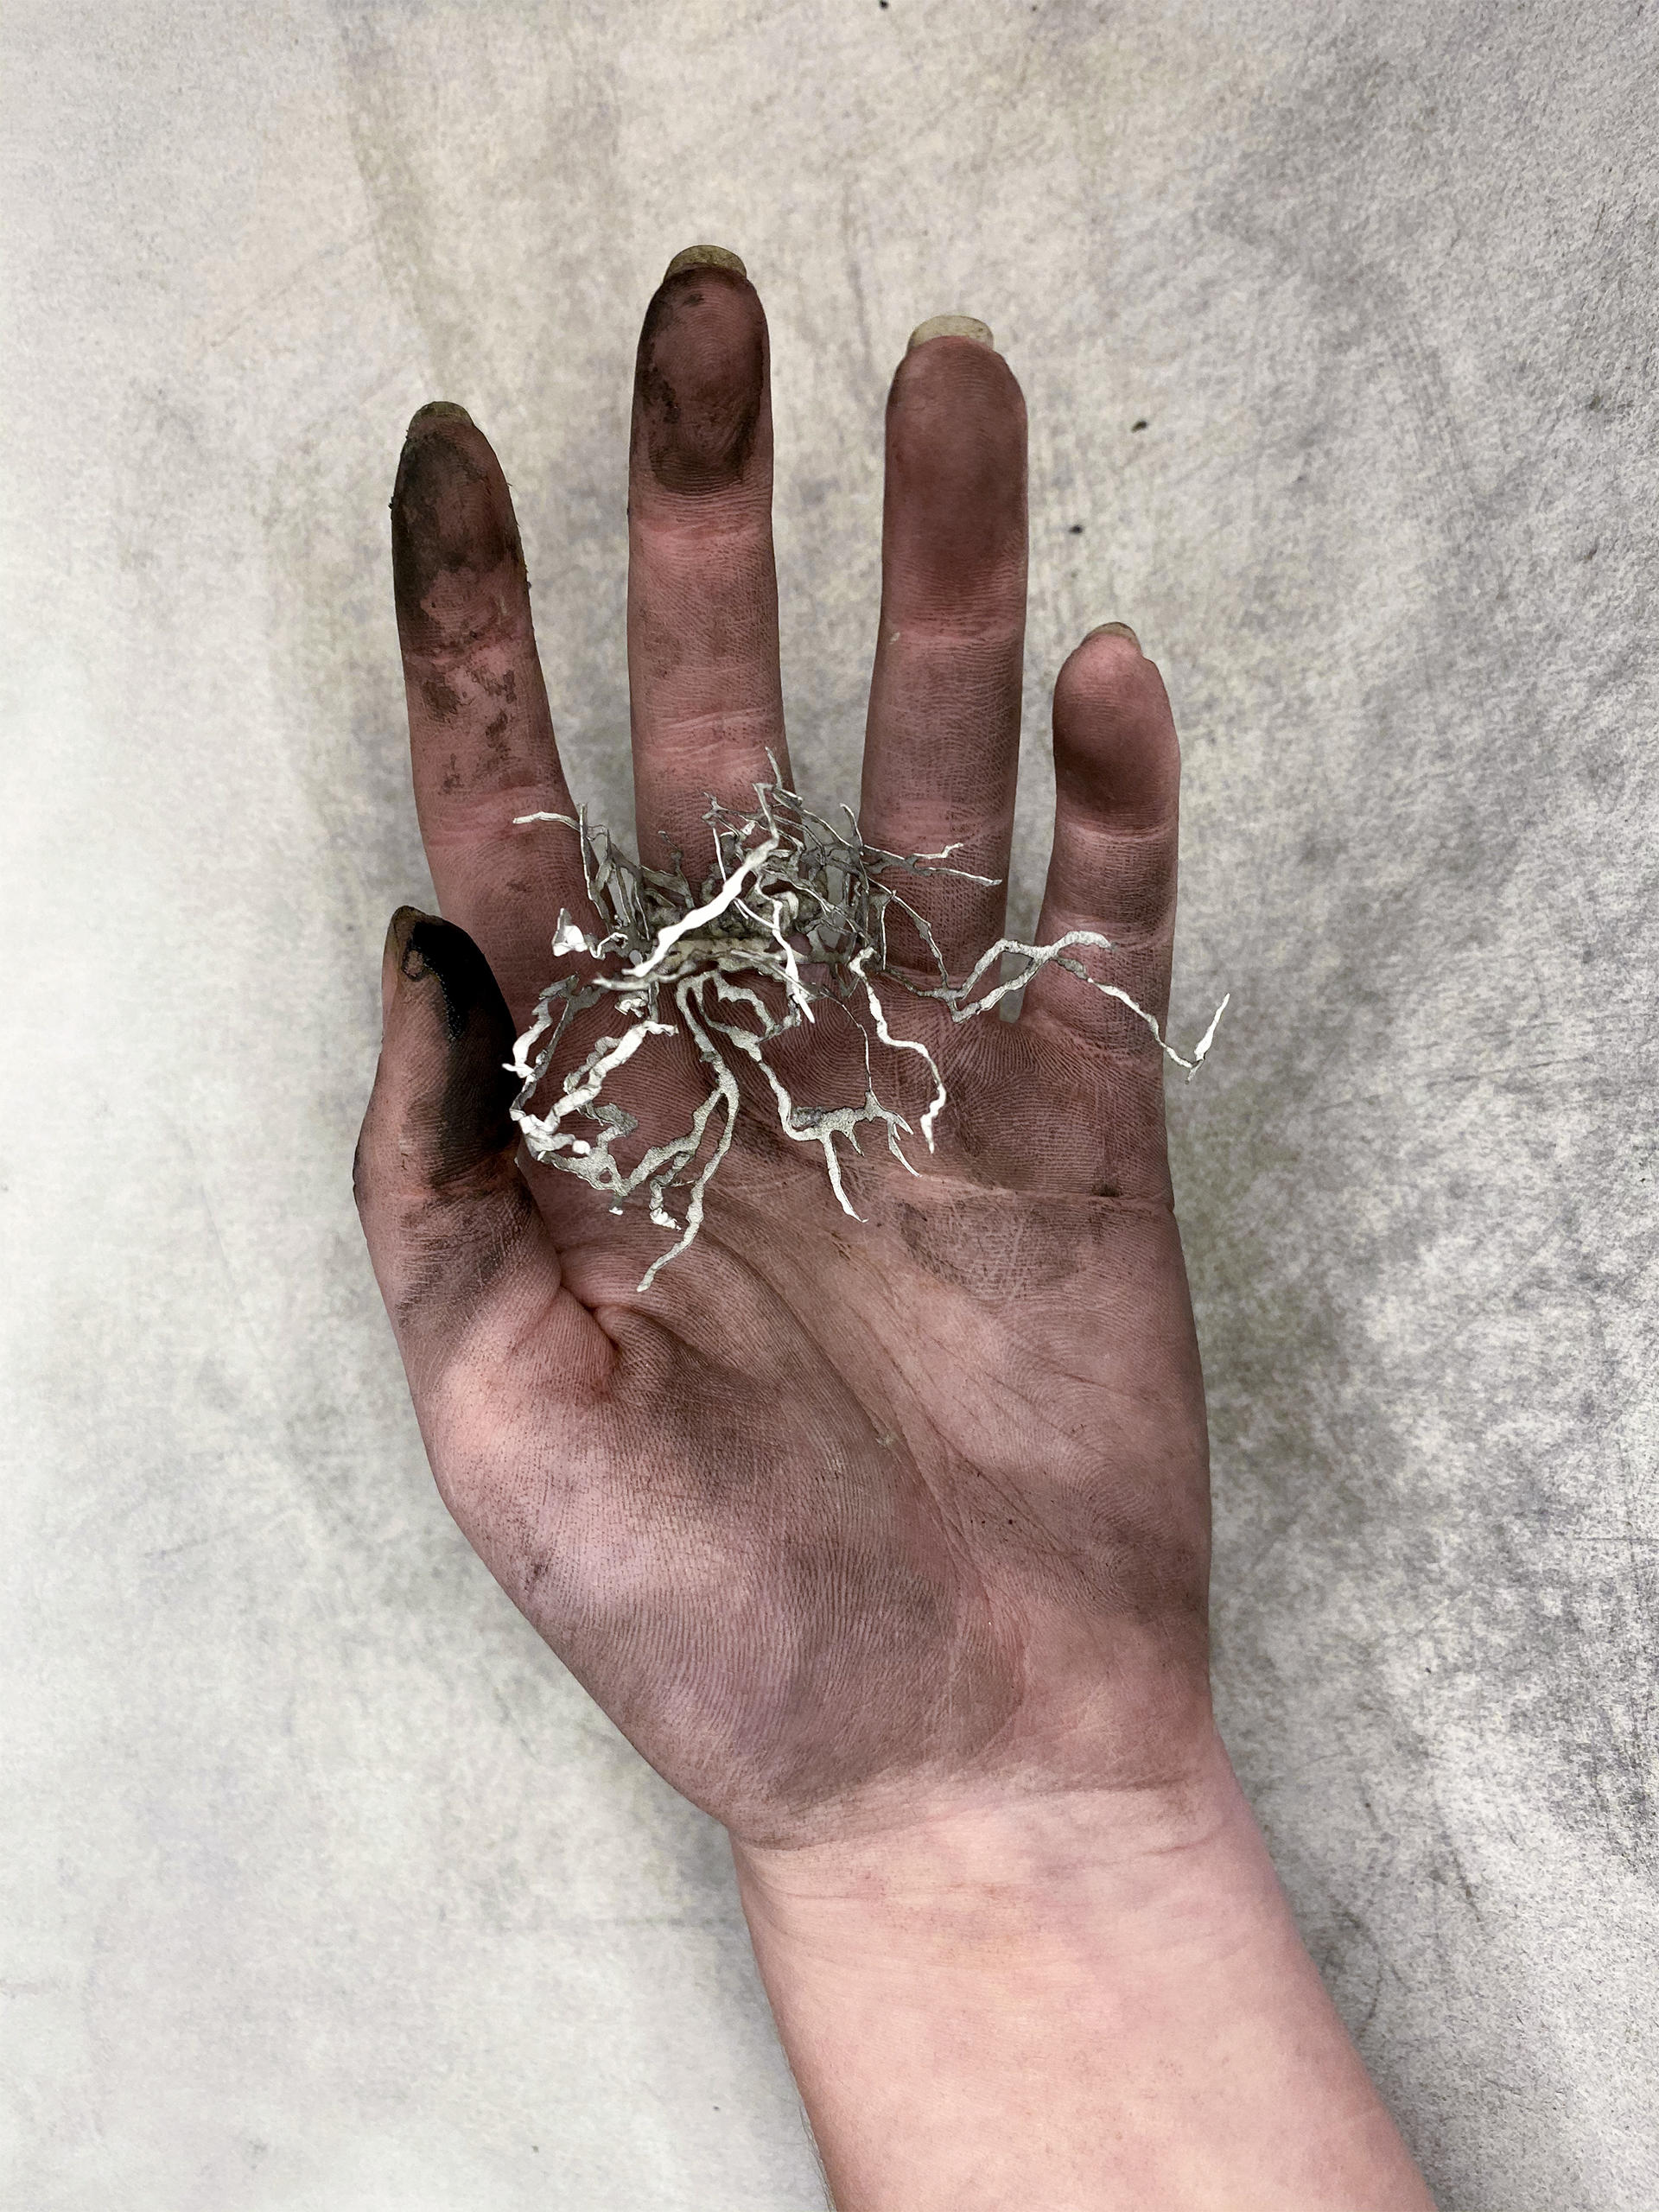 Hand covered in ash holding a small paper sculpture